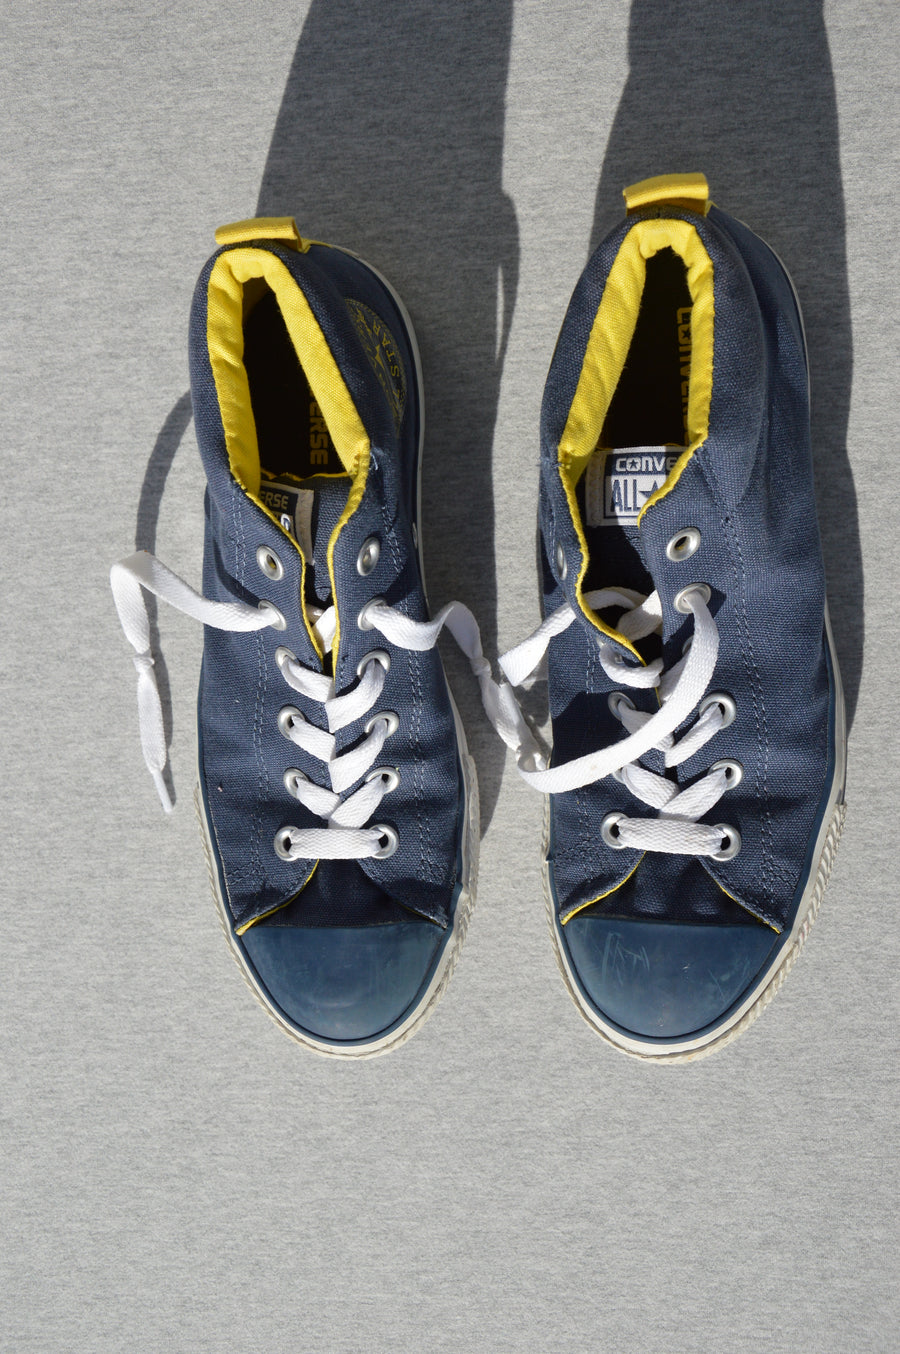 Converse All Stars - nearly new - blue & yellow high tops, size 5.5